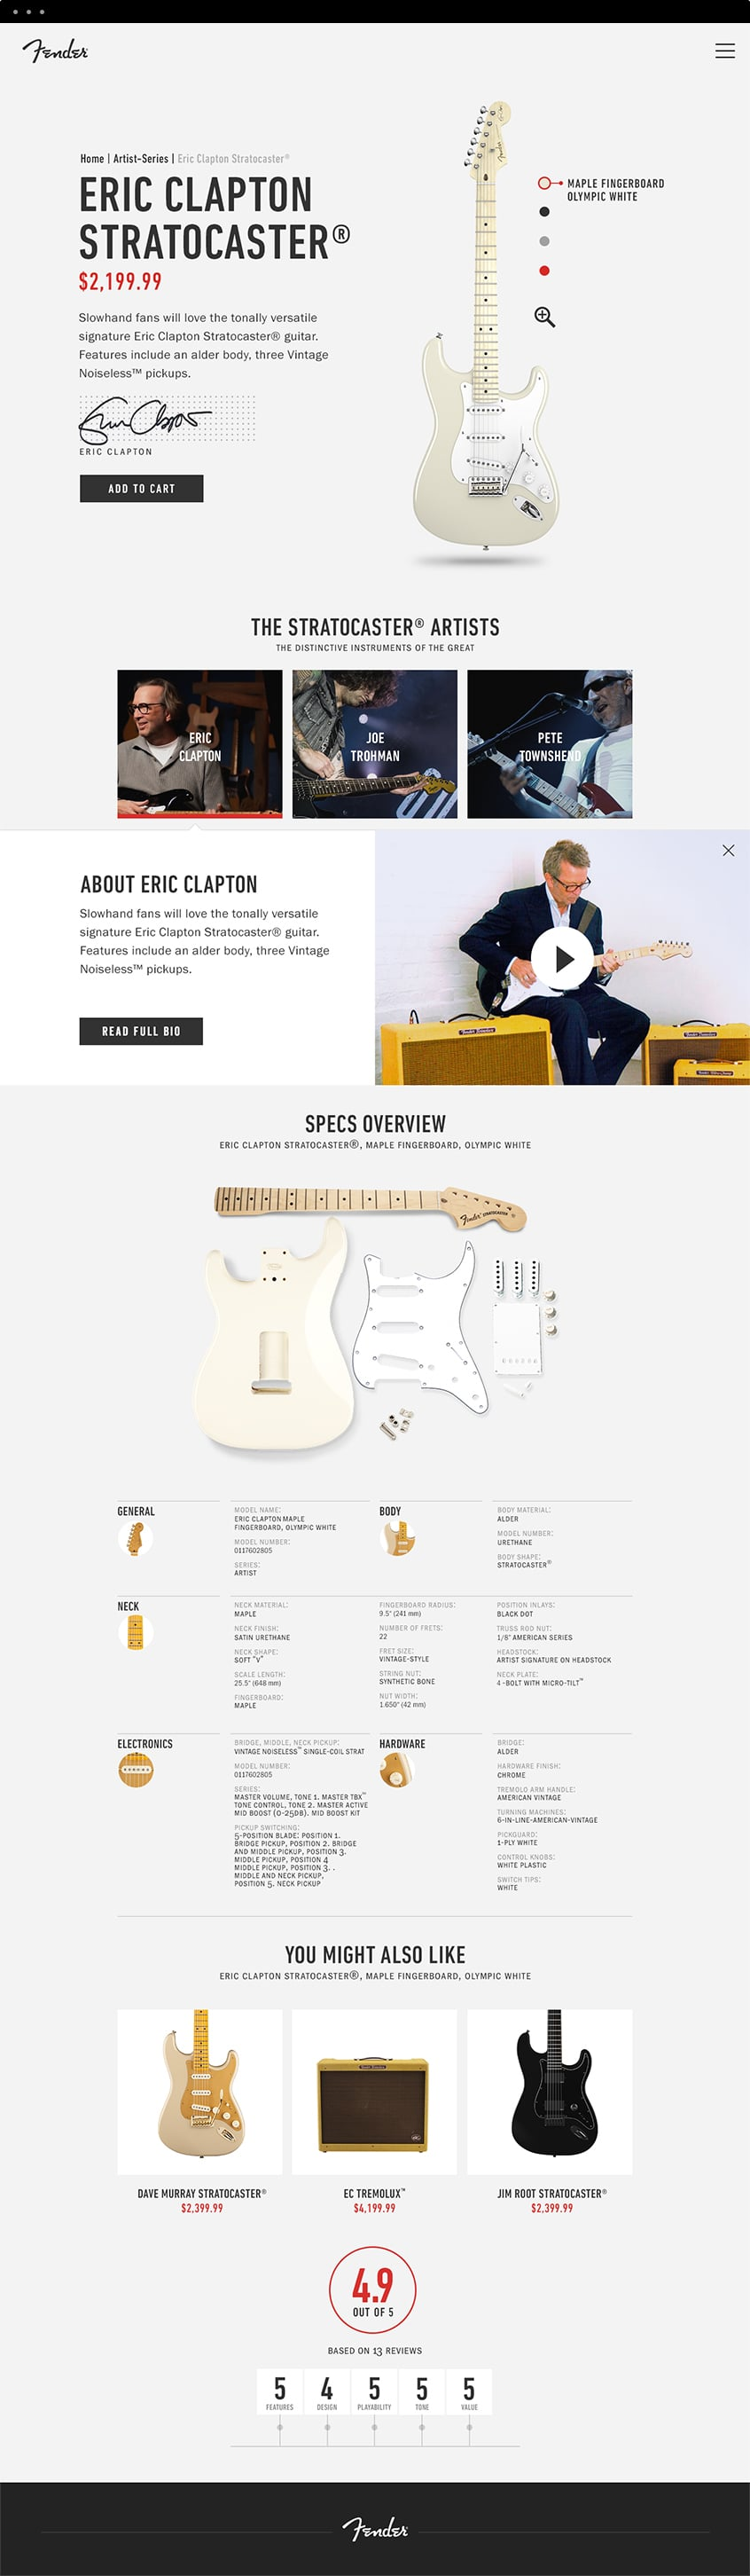 Fender.com Product Detail Page